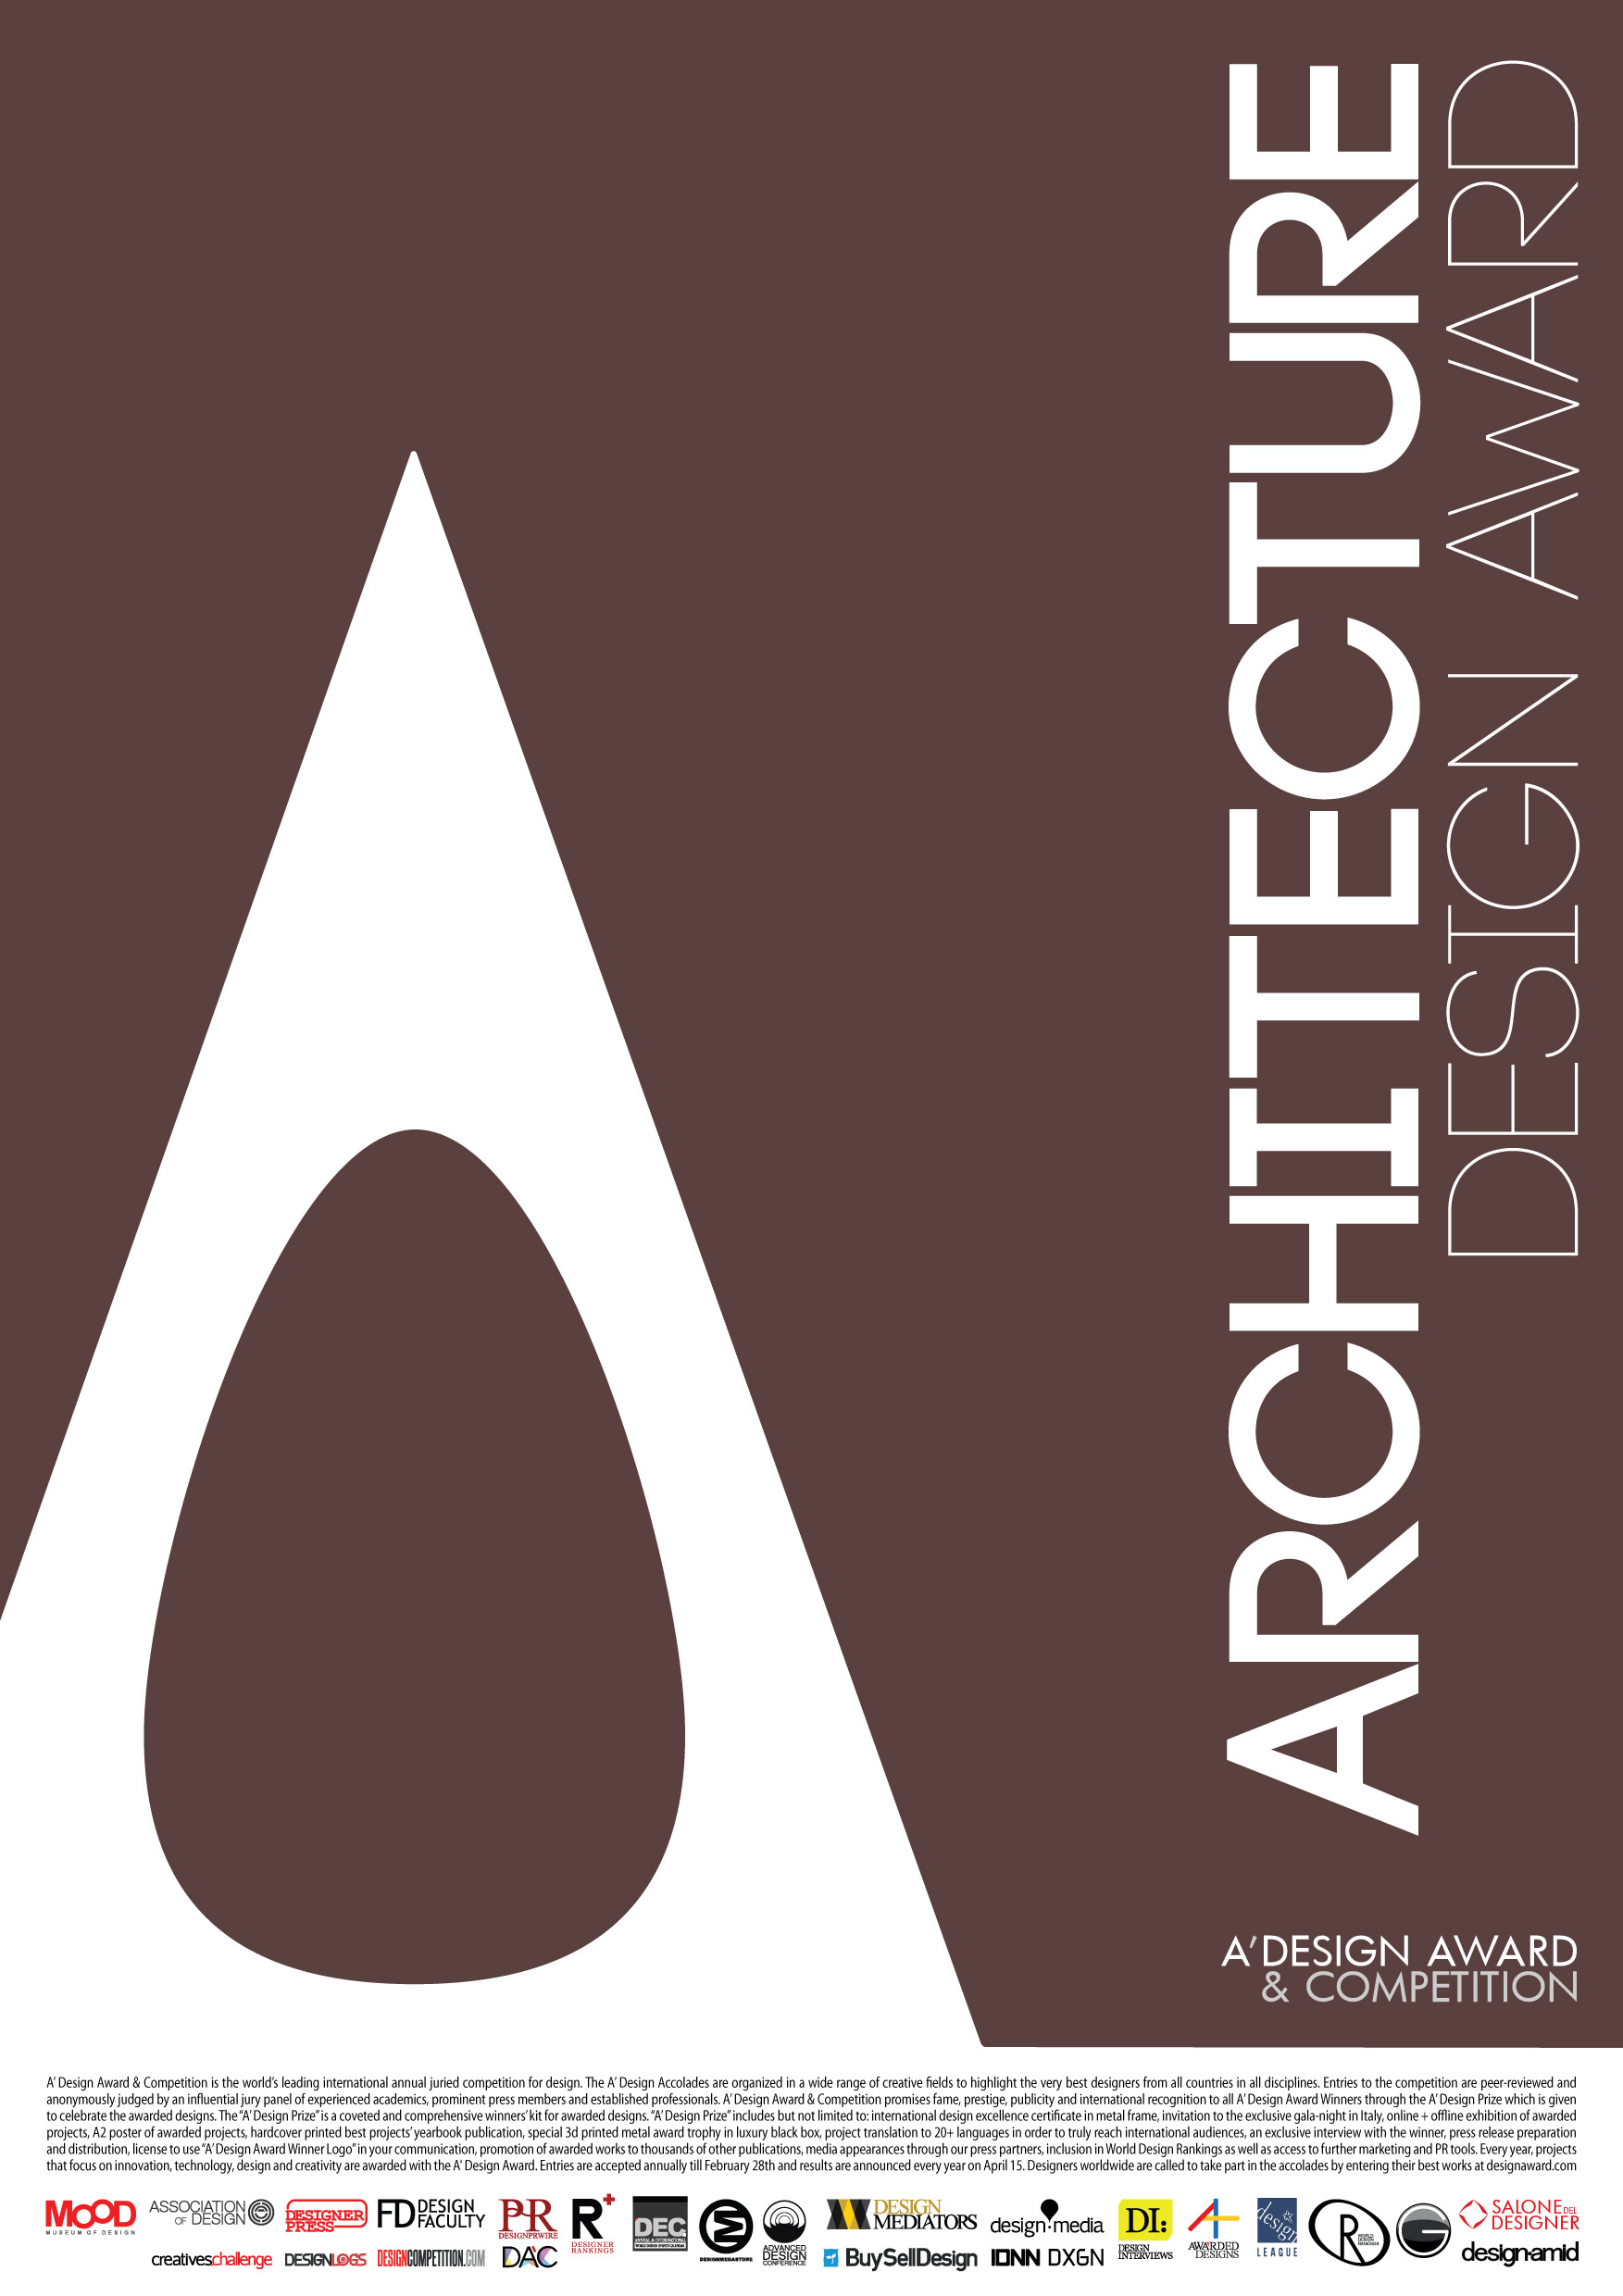 Poster design for architecture - Available Downloads Medium 715 X 1011 Px 72dpi Jpeg